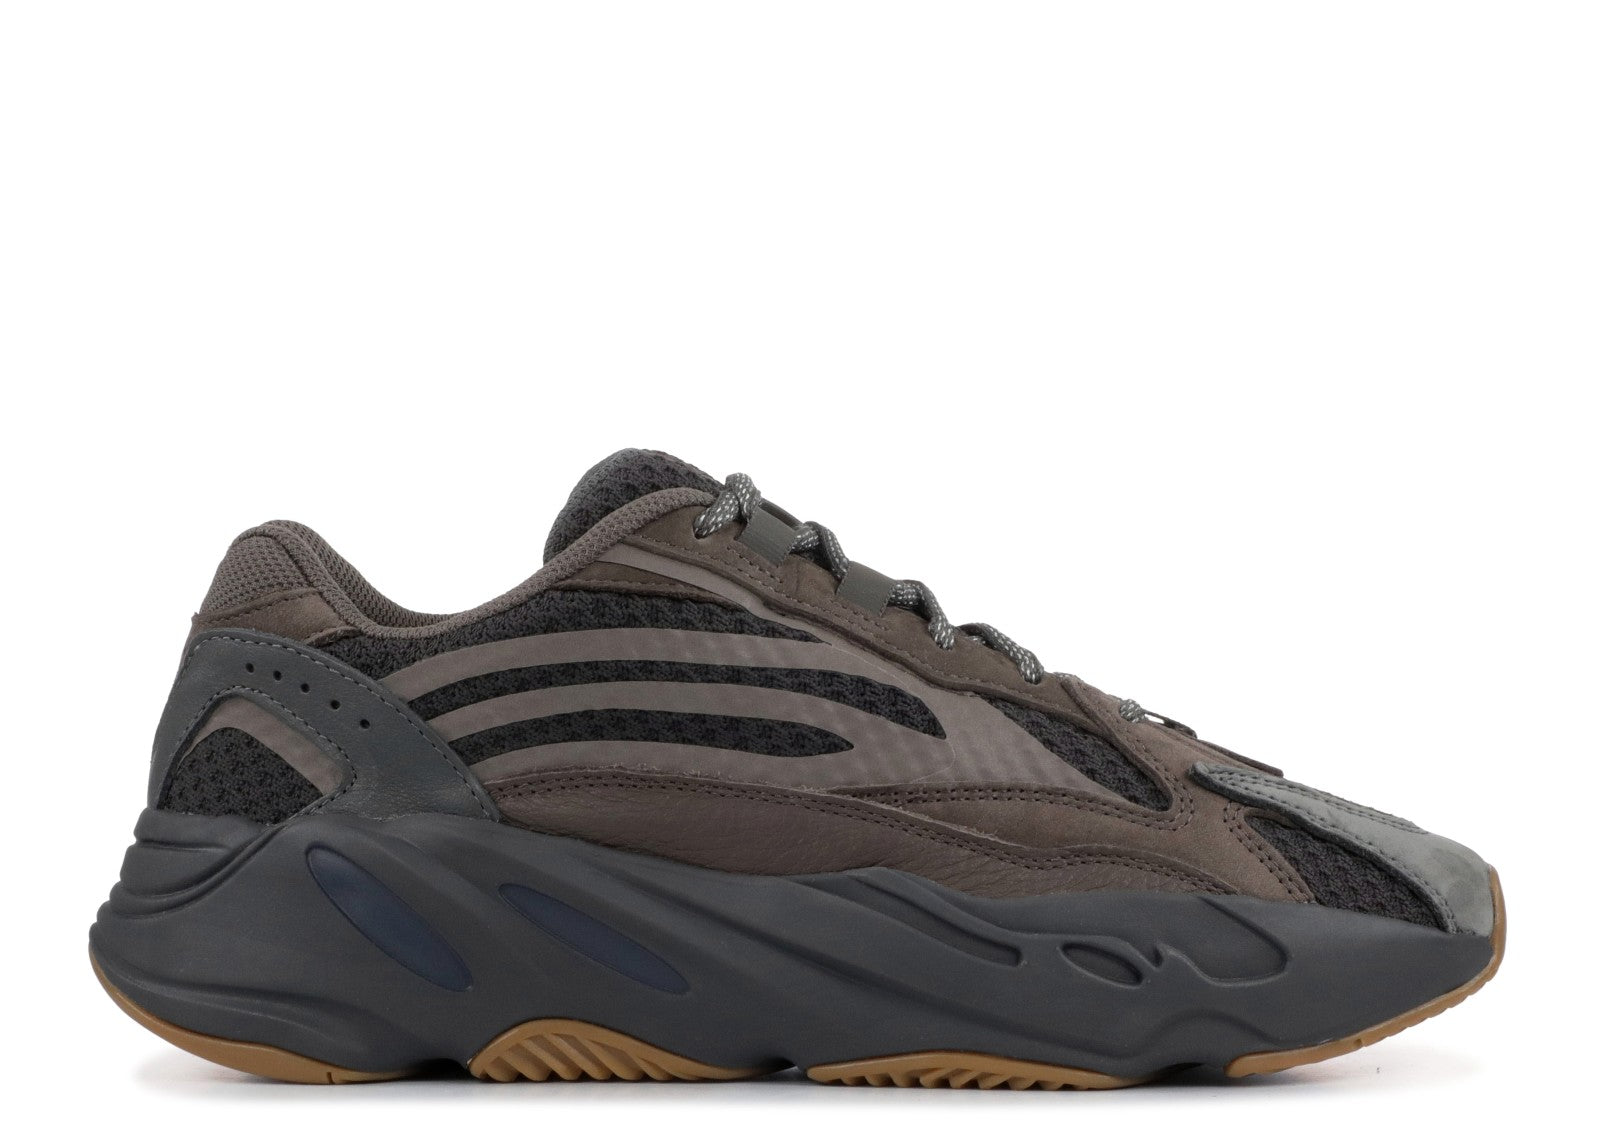 fe7fd9f09 Adidas Yeezy Boost 700 Geode – The Kingsfare